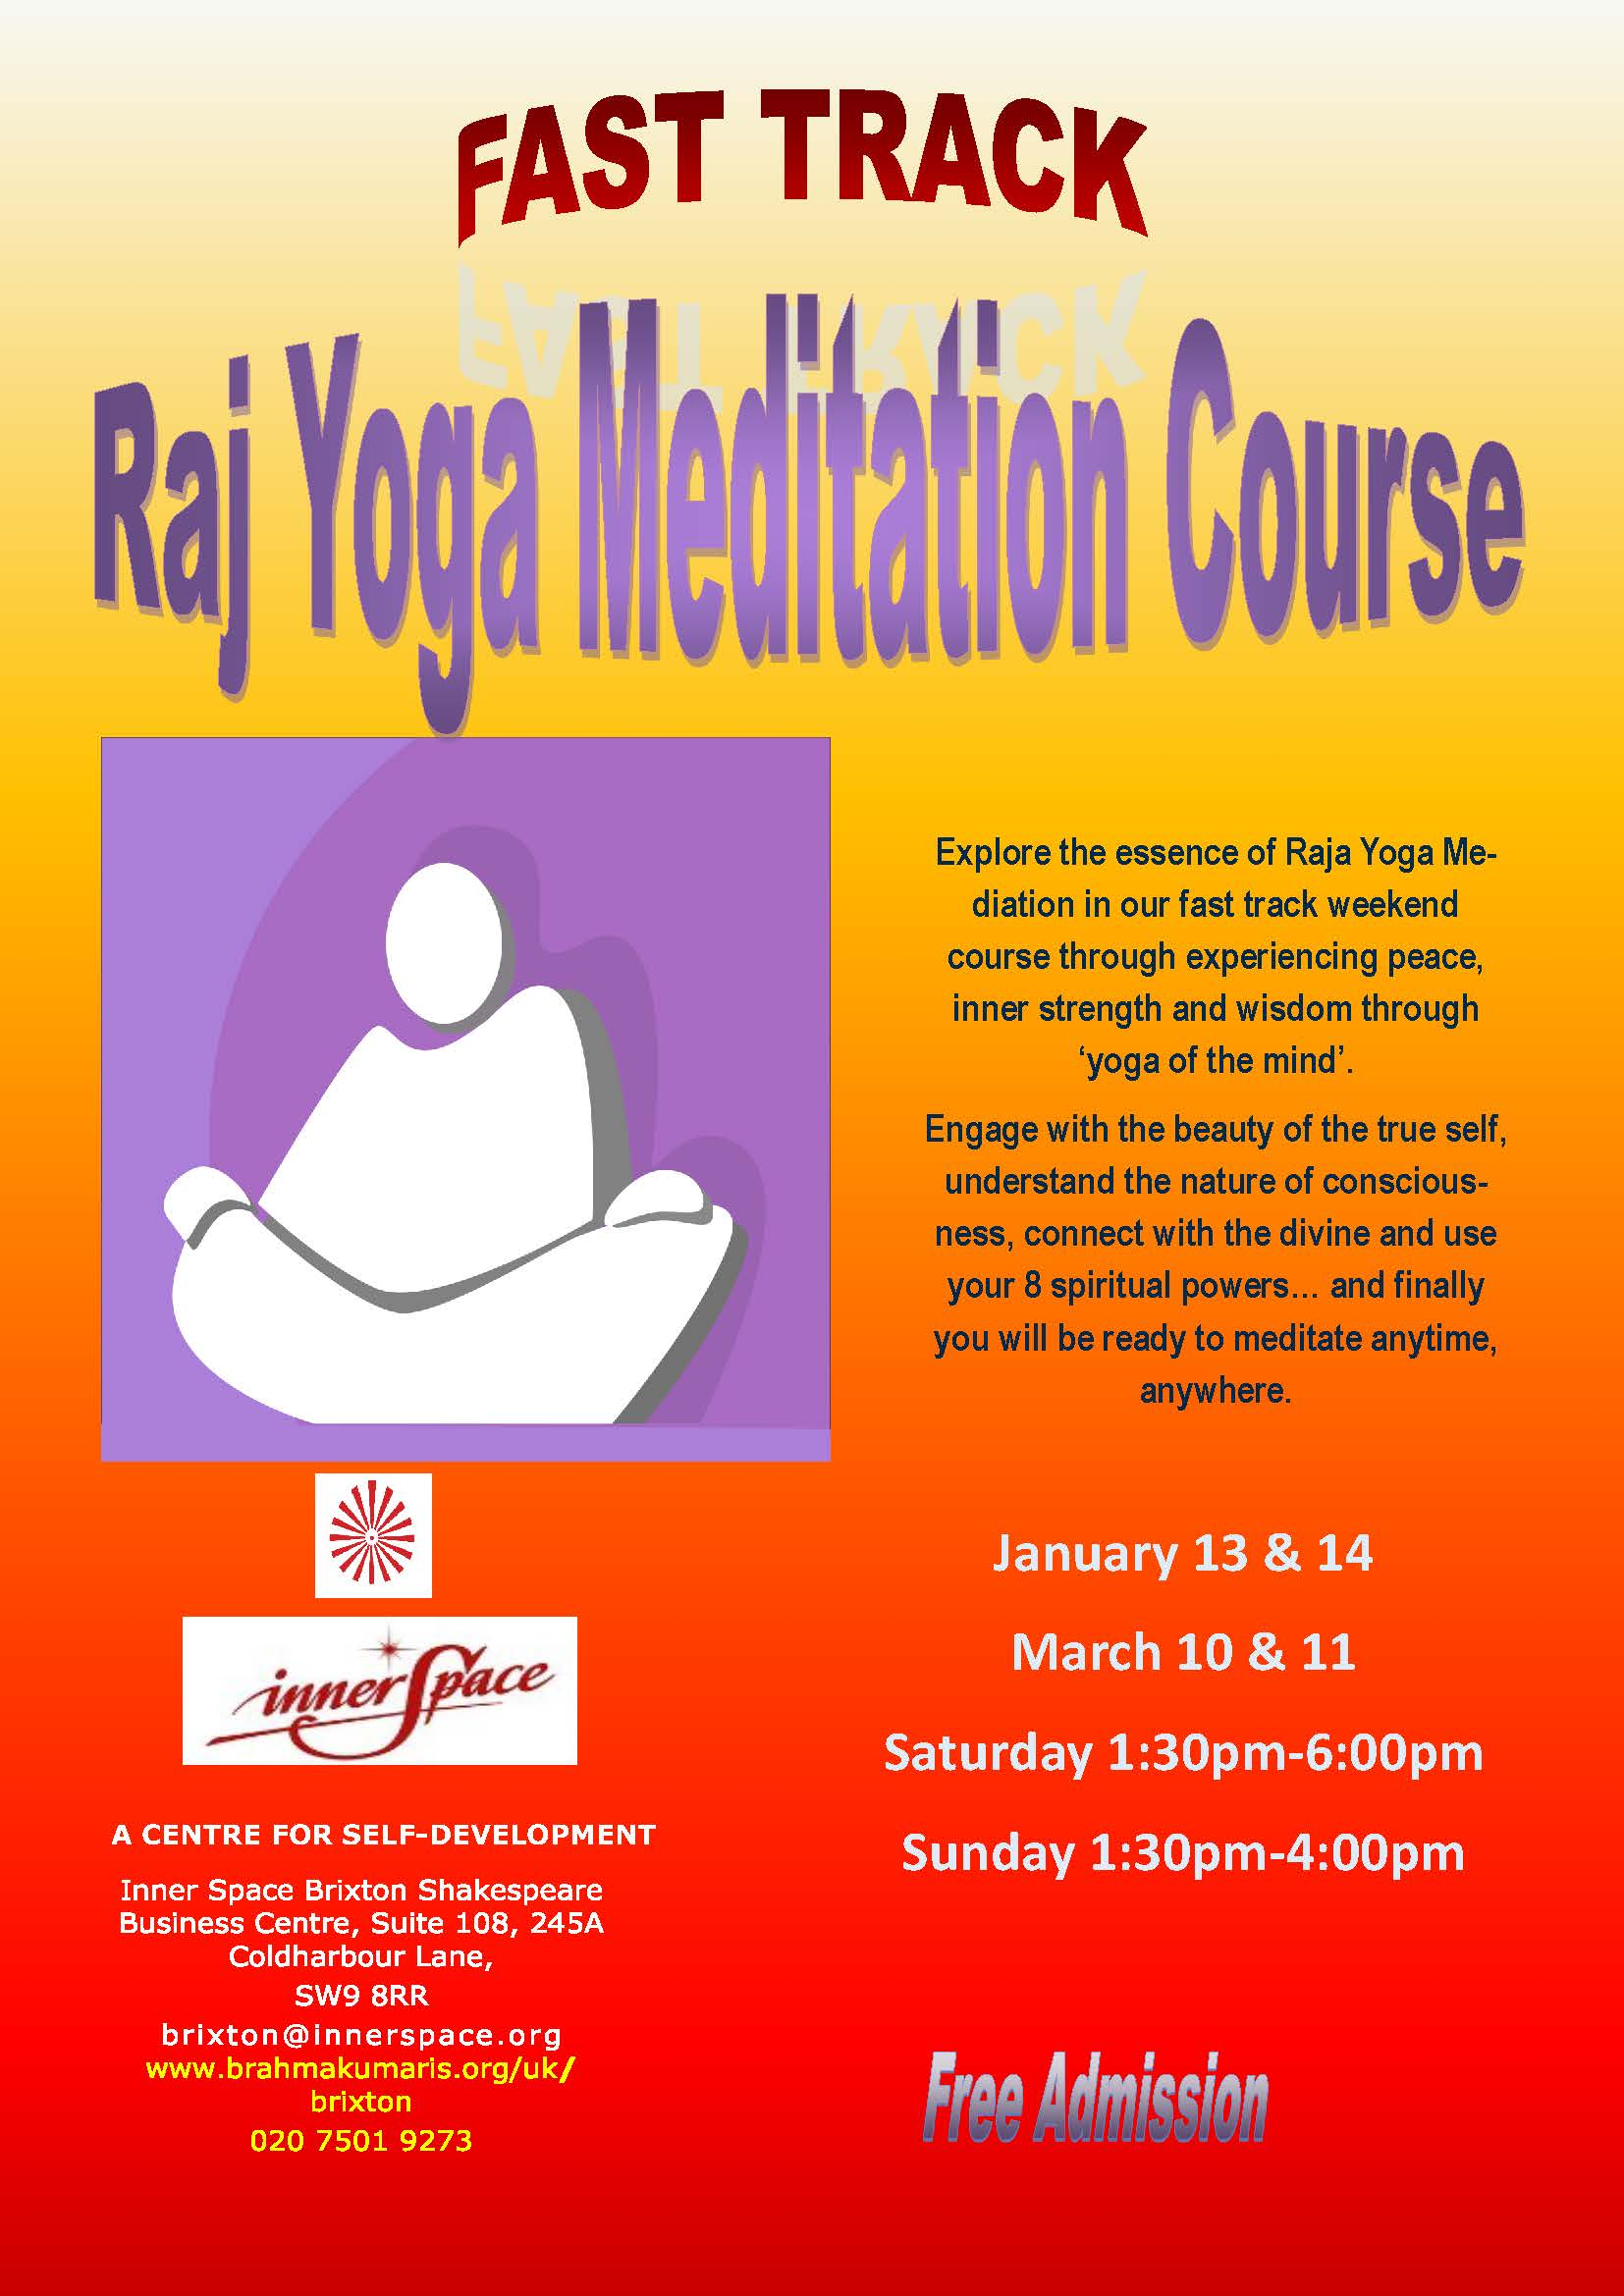 Fast Track Raja Yoga Meditation Course